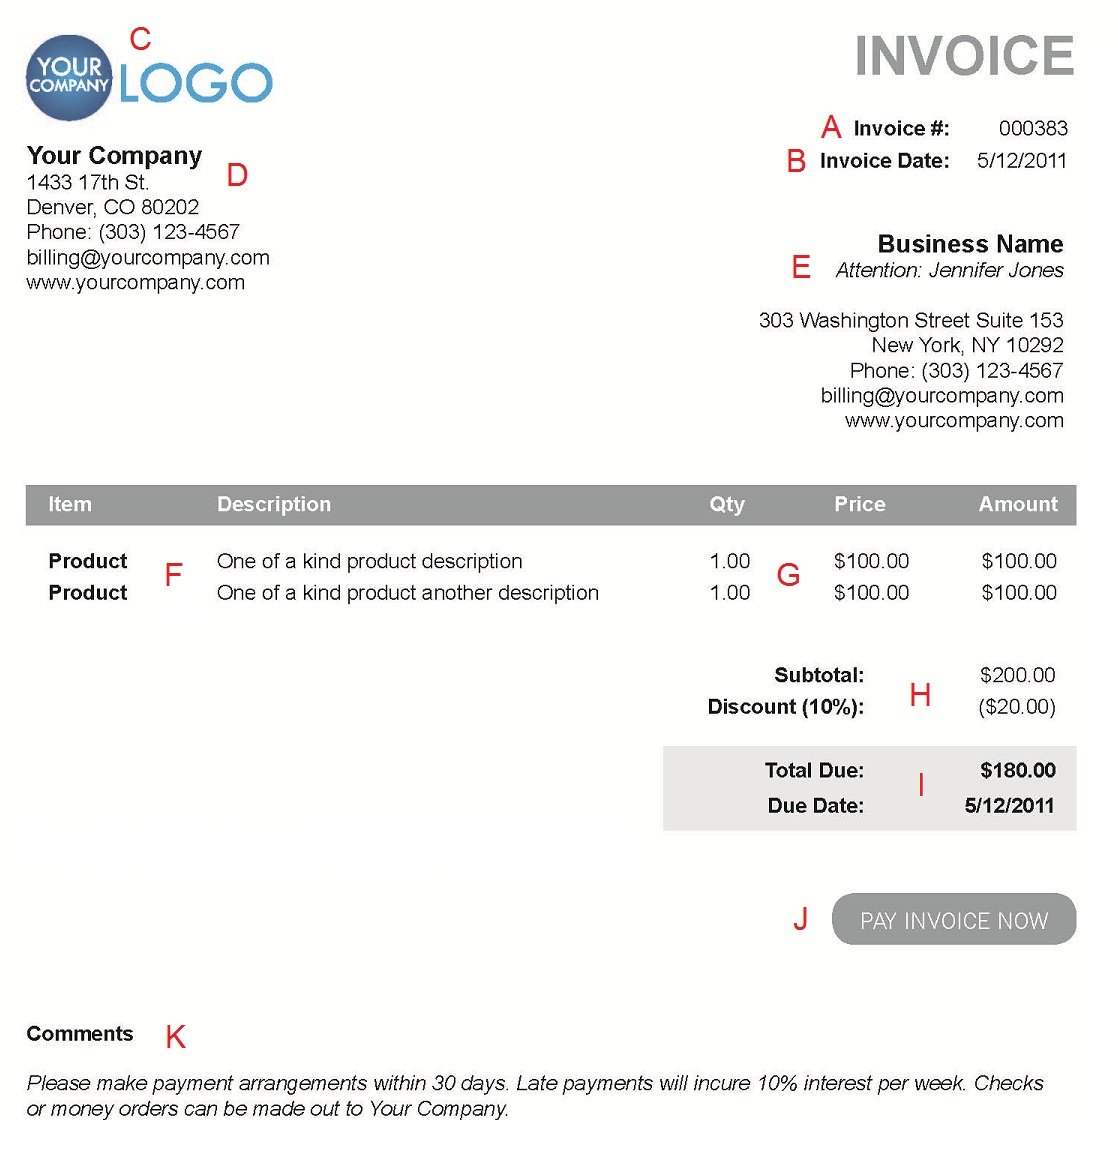 Amatospizzaus  Gorgeous The  Different Sections Of An Electronic Payment Invoice With Goodlooking A  With Cool Simple Invoice Templates Also How Do I Send An Invoice Through Paypal In Addition Chase Online Invoicing And What Is Sales Invoice As Well As Auto Repair Invoice Sample Additionally Freelance Designer Invoice Template From Paysimplecom With Amatospizzaus  Goodlooking The  Different Sections Of An Electronic Payment Invoice With Cool A  And Gorgeous Simple Invoice Templates Also How Do I Send An Invoice Through Paypal In Addition Chase Online Invoicing From Paysimplecom